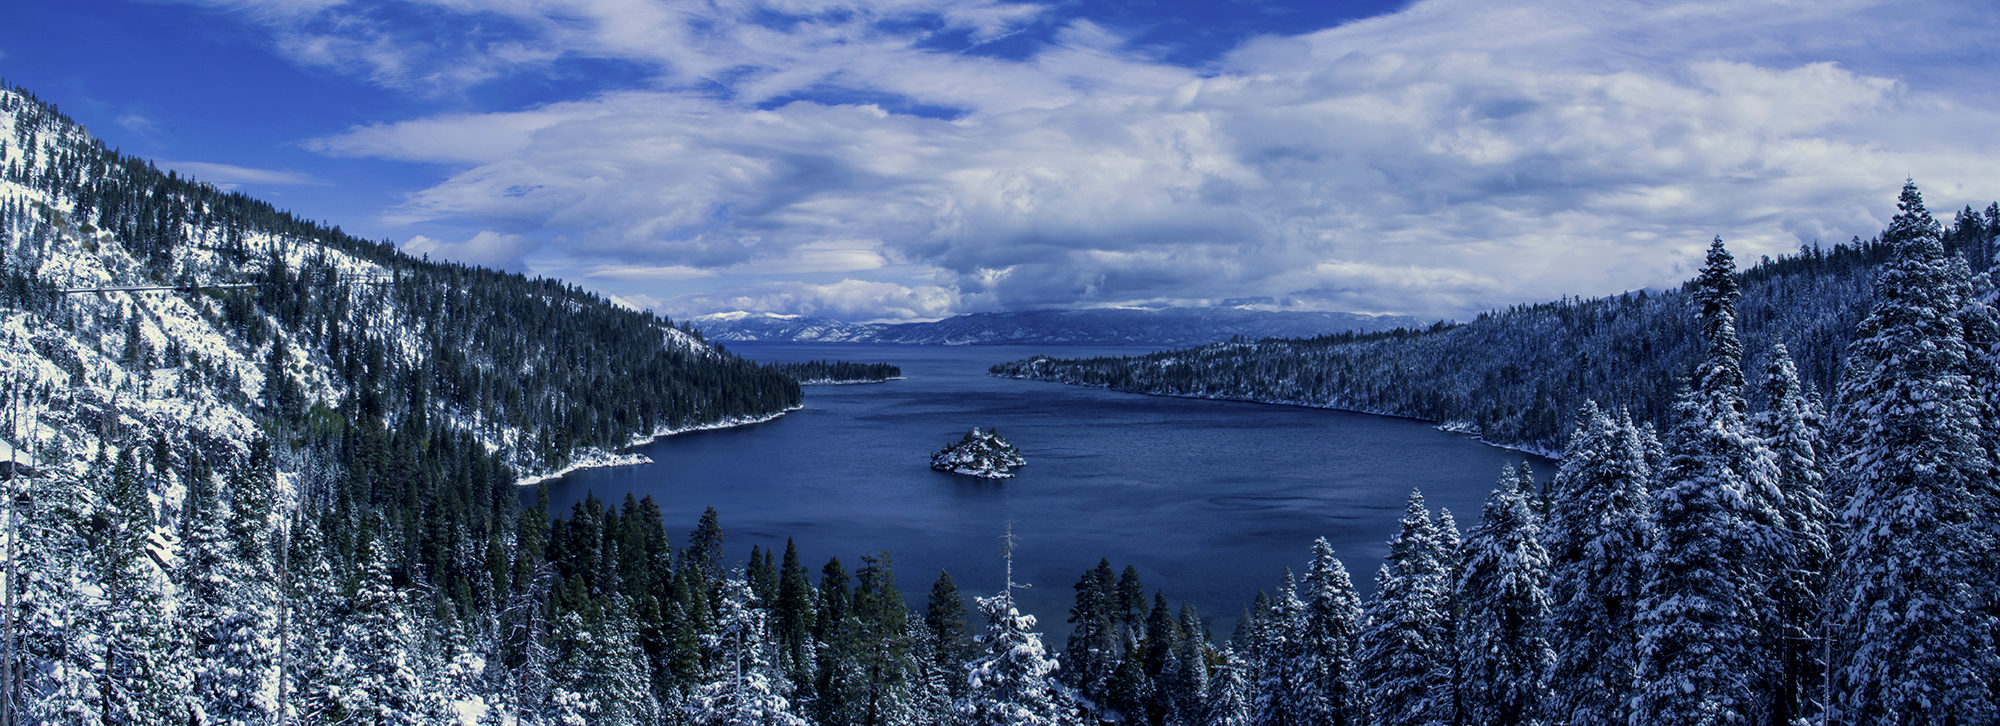 emerald bay snow pano